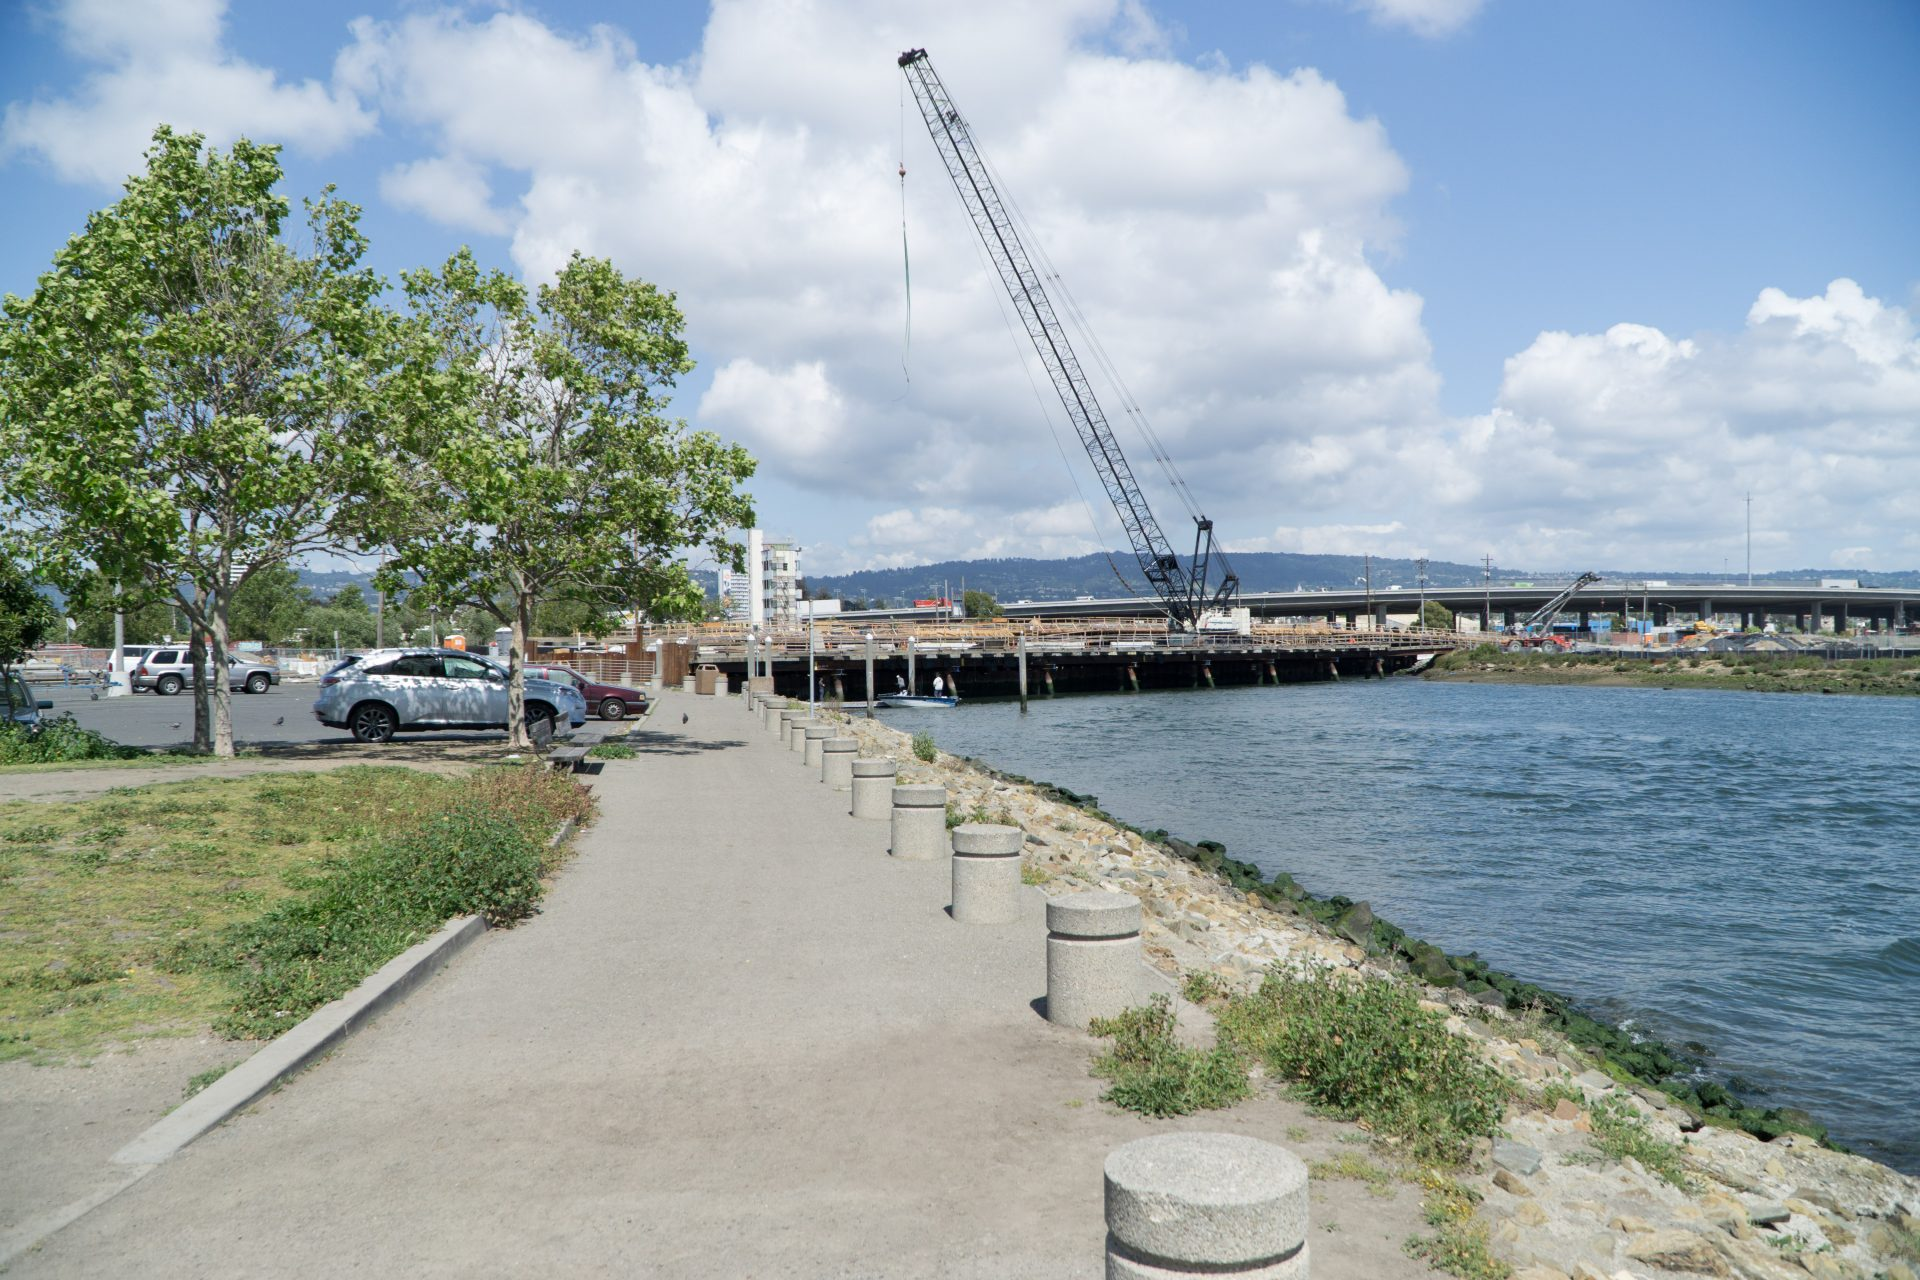 paved path with bollards and bay on right